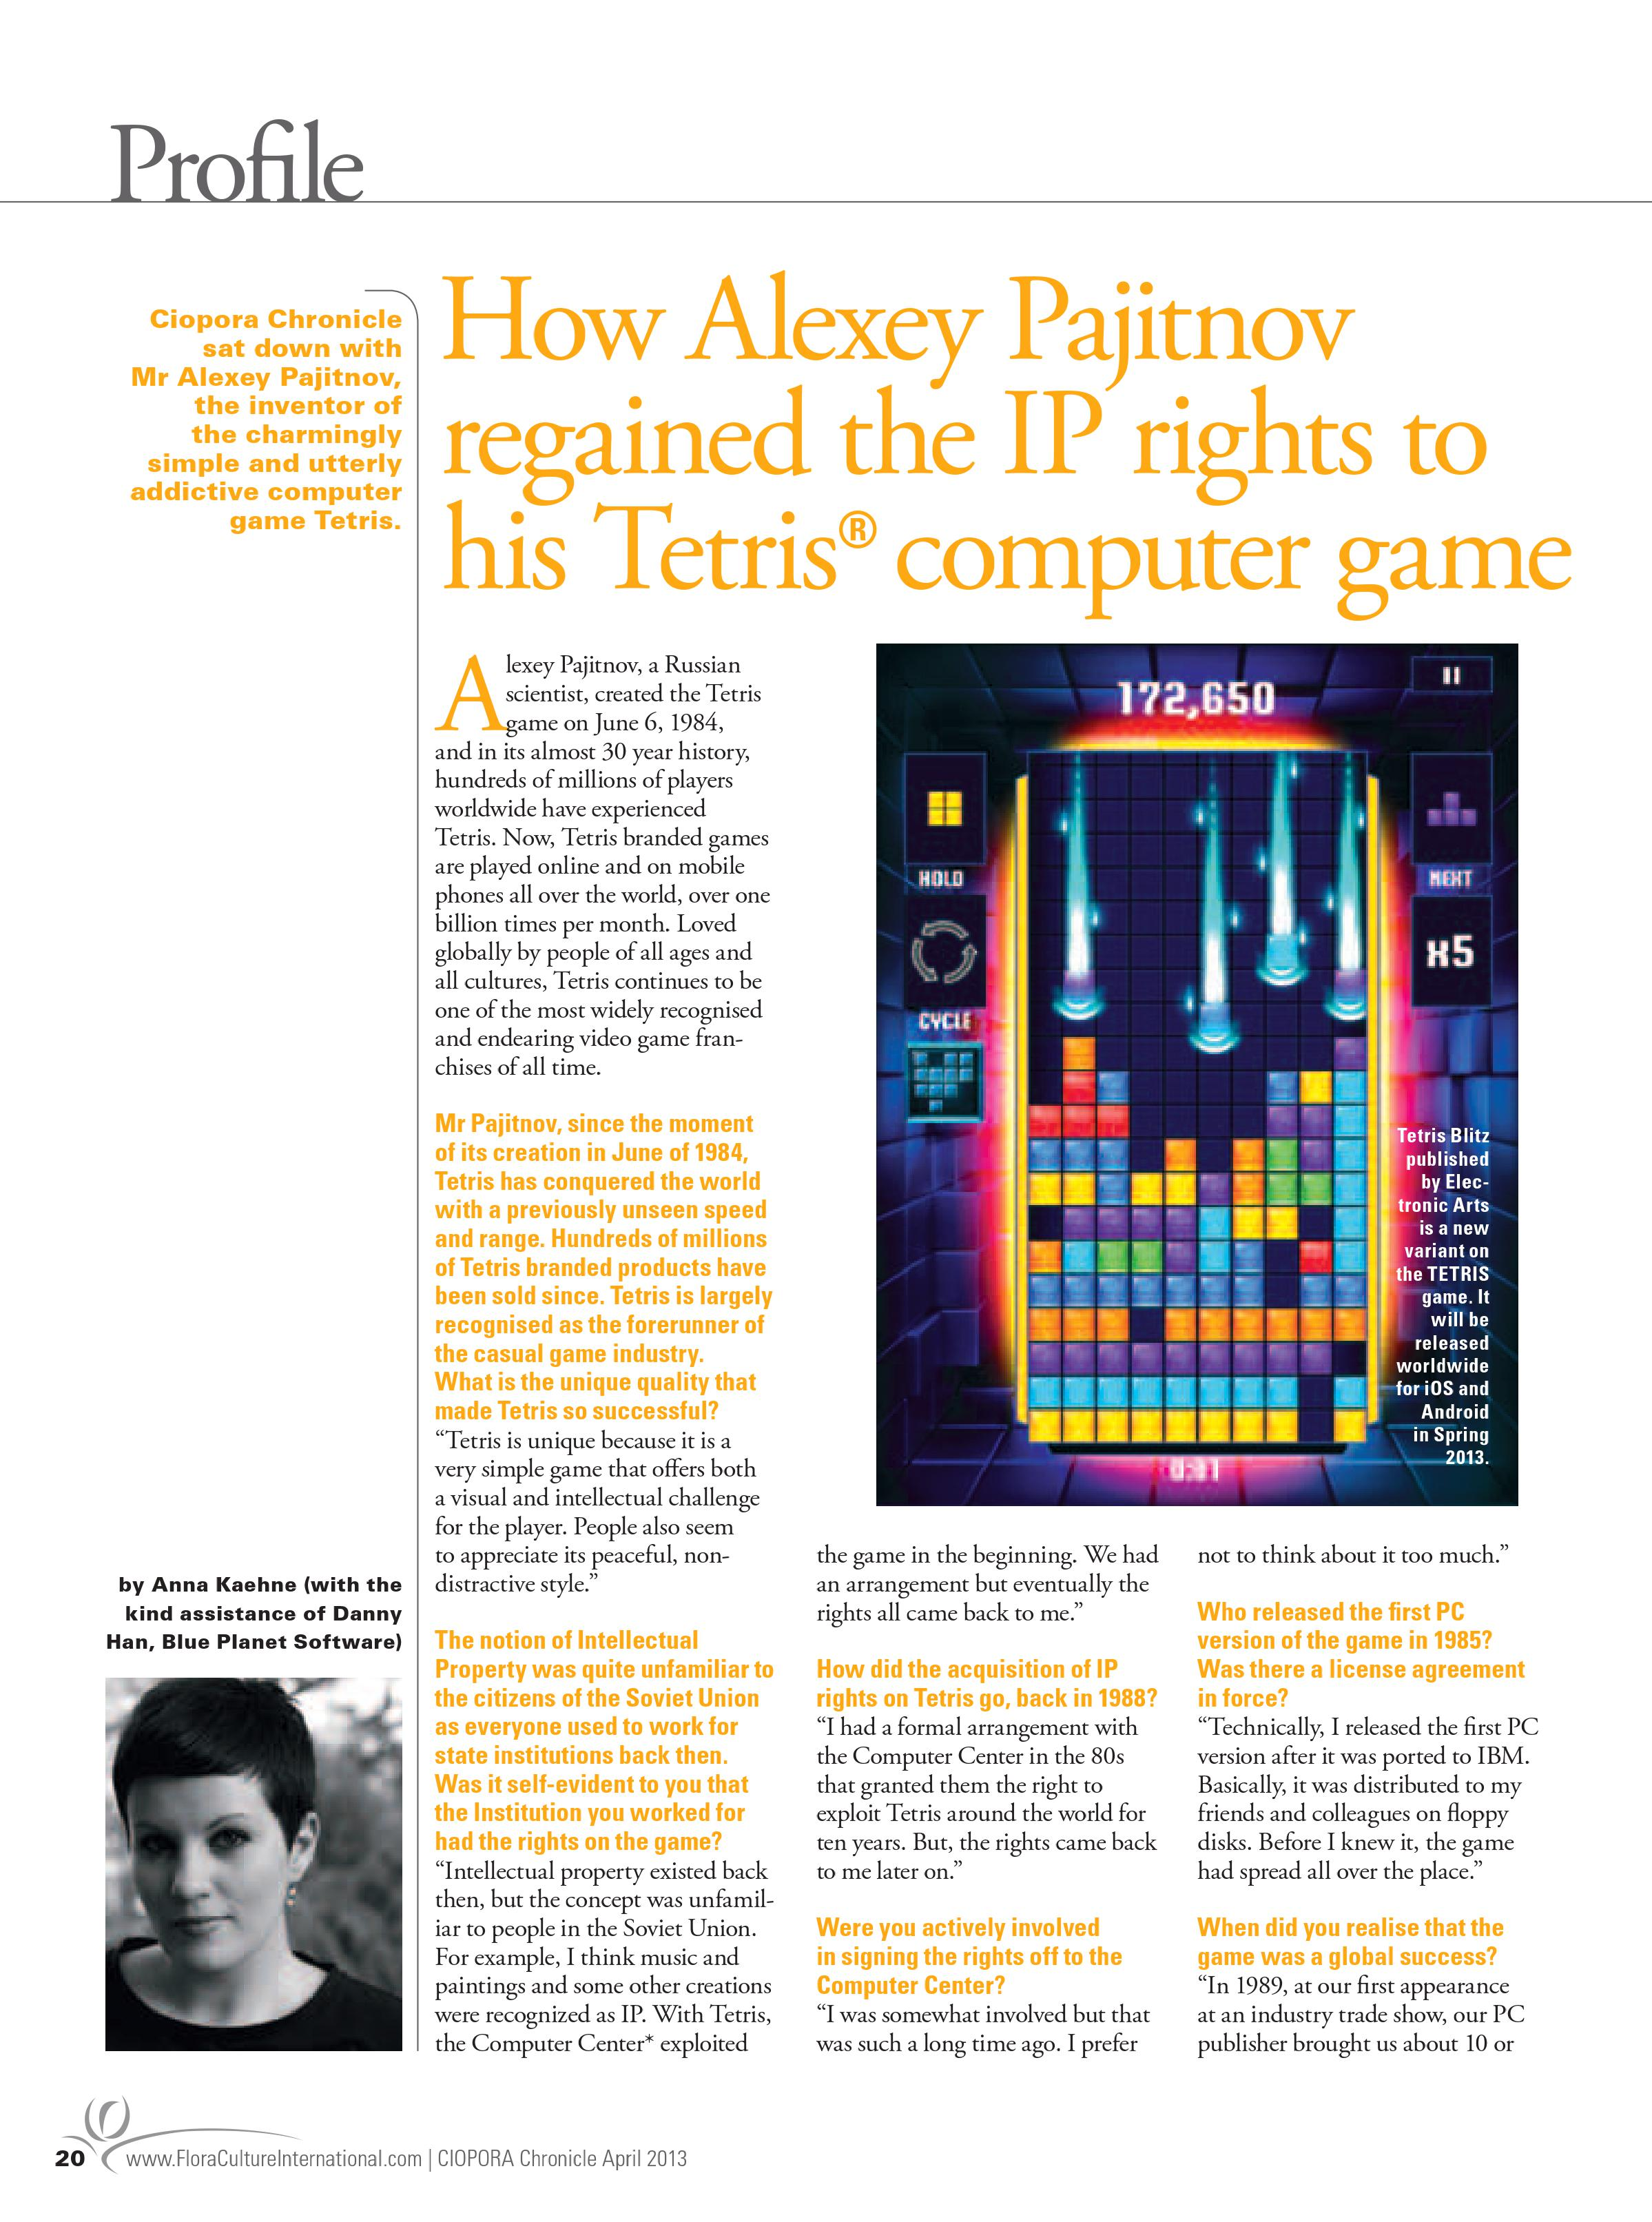 Interview with Alexander Pajitnow, the inventor of Tetris©